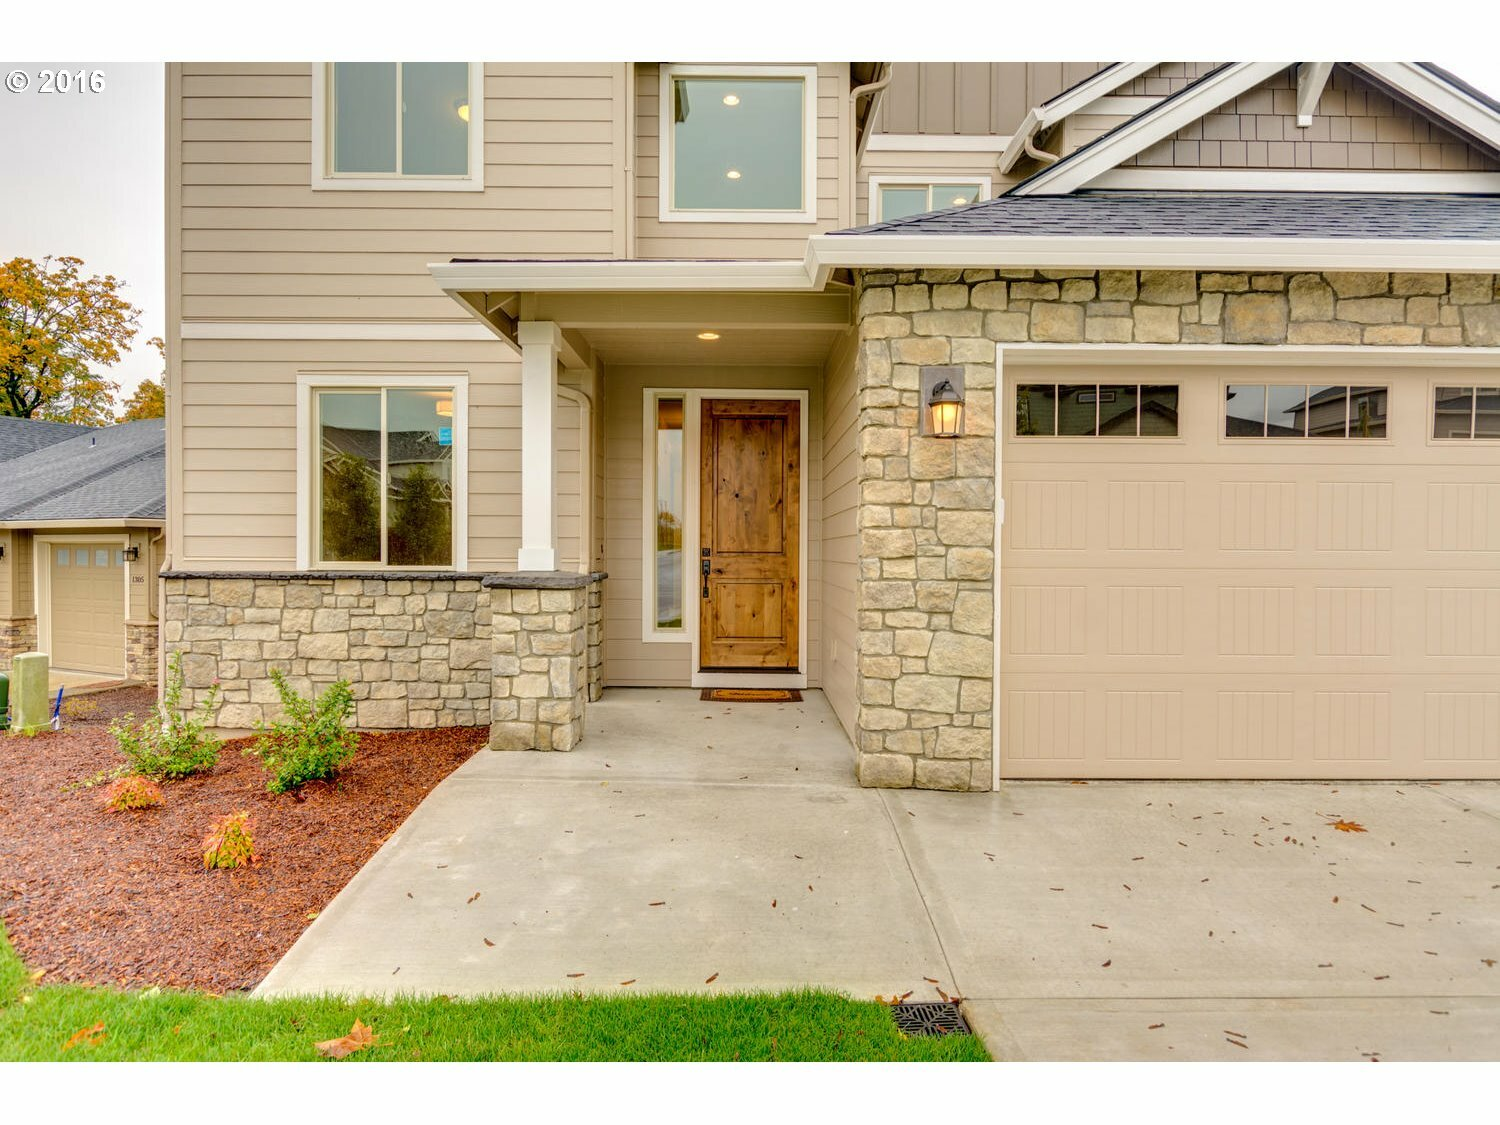 1225 N 8th Way, Ridgefield, WA - USA (photo 2)